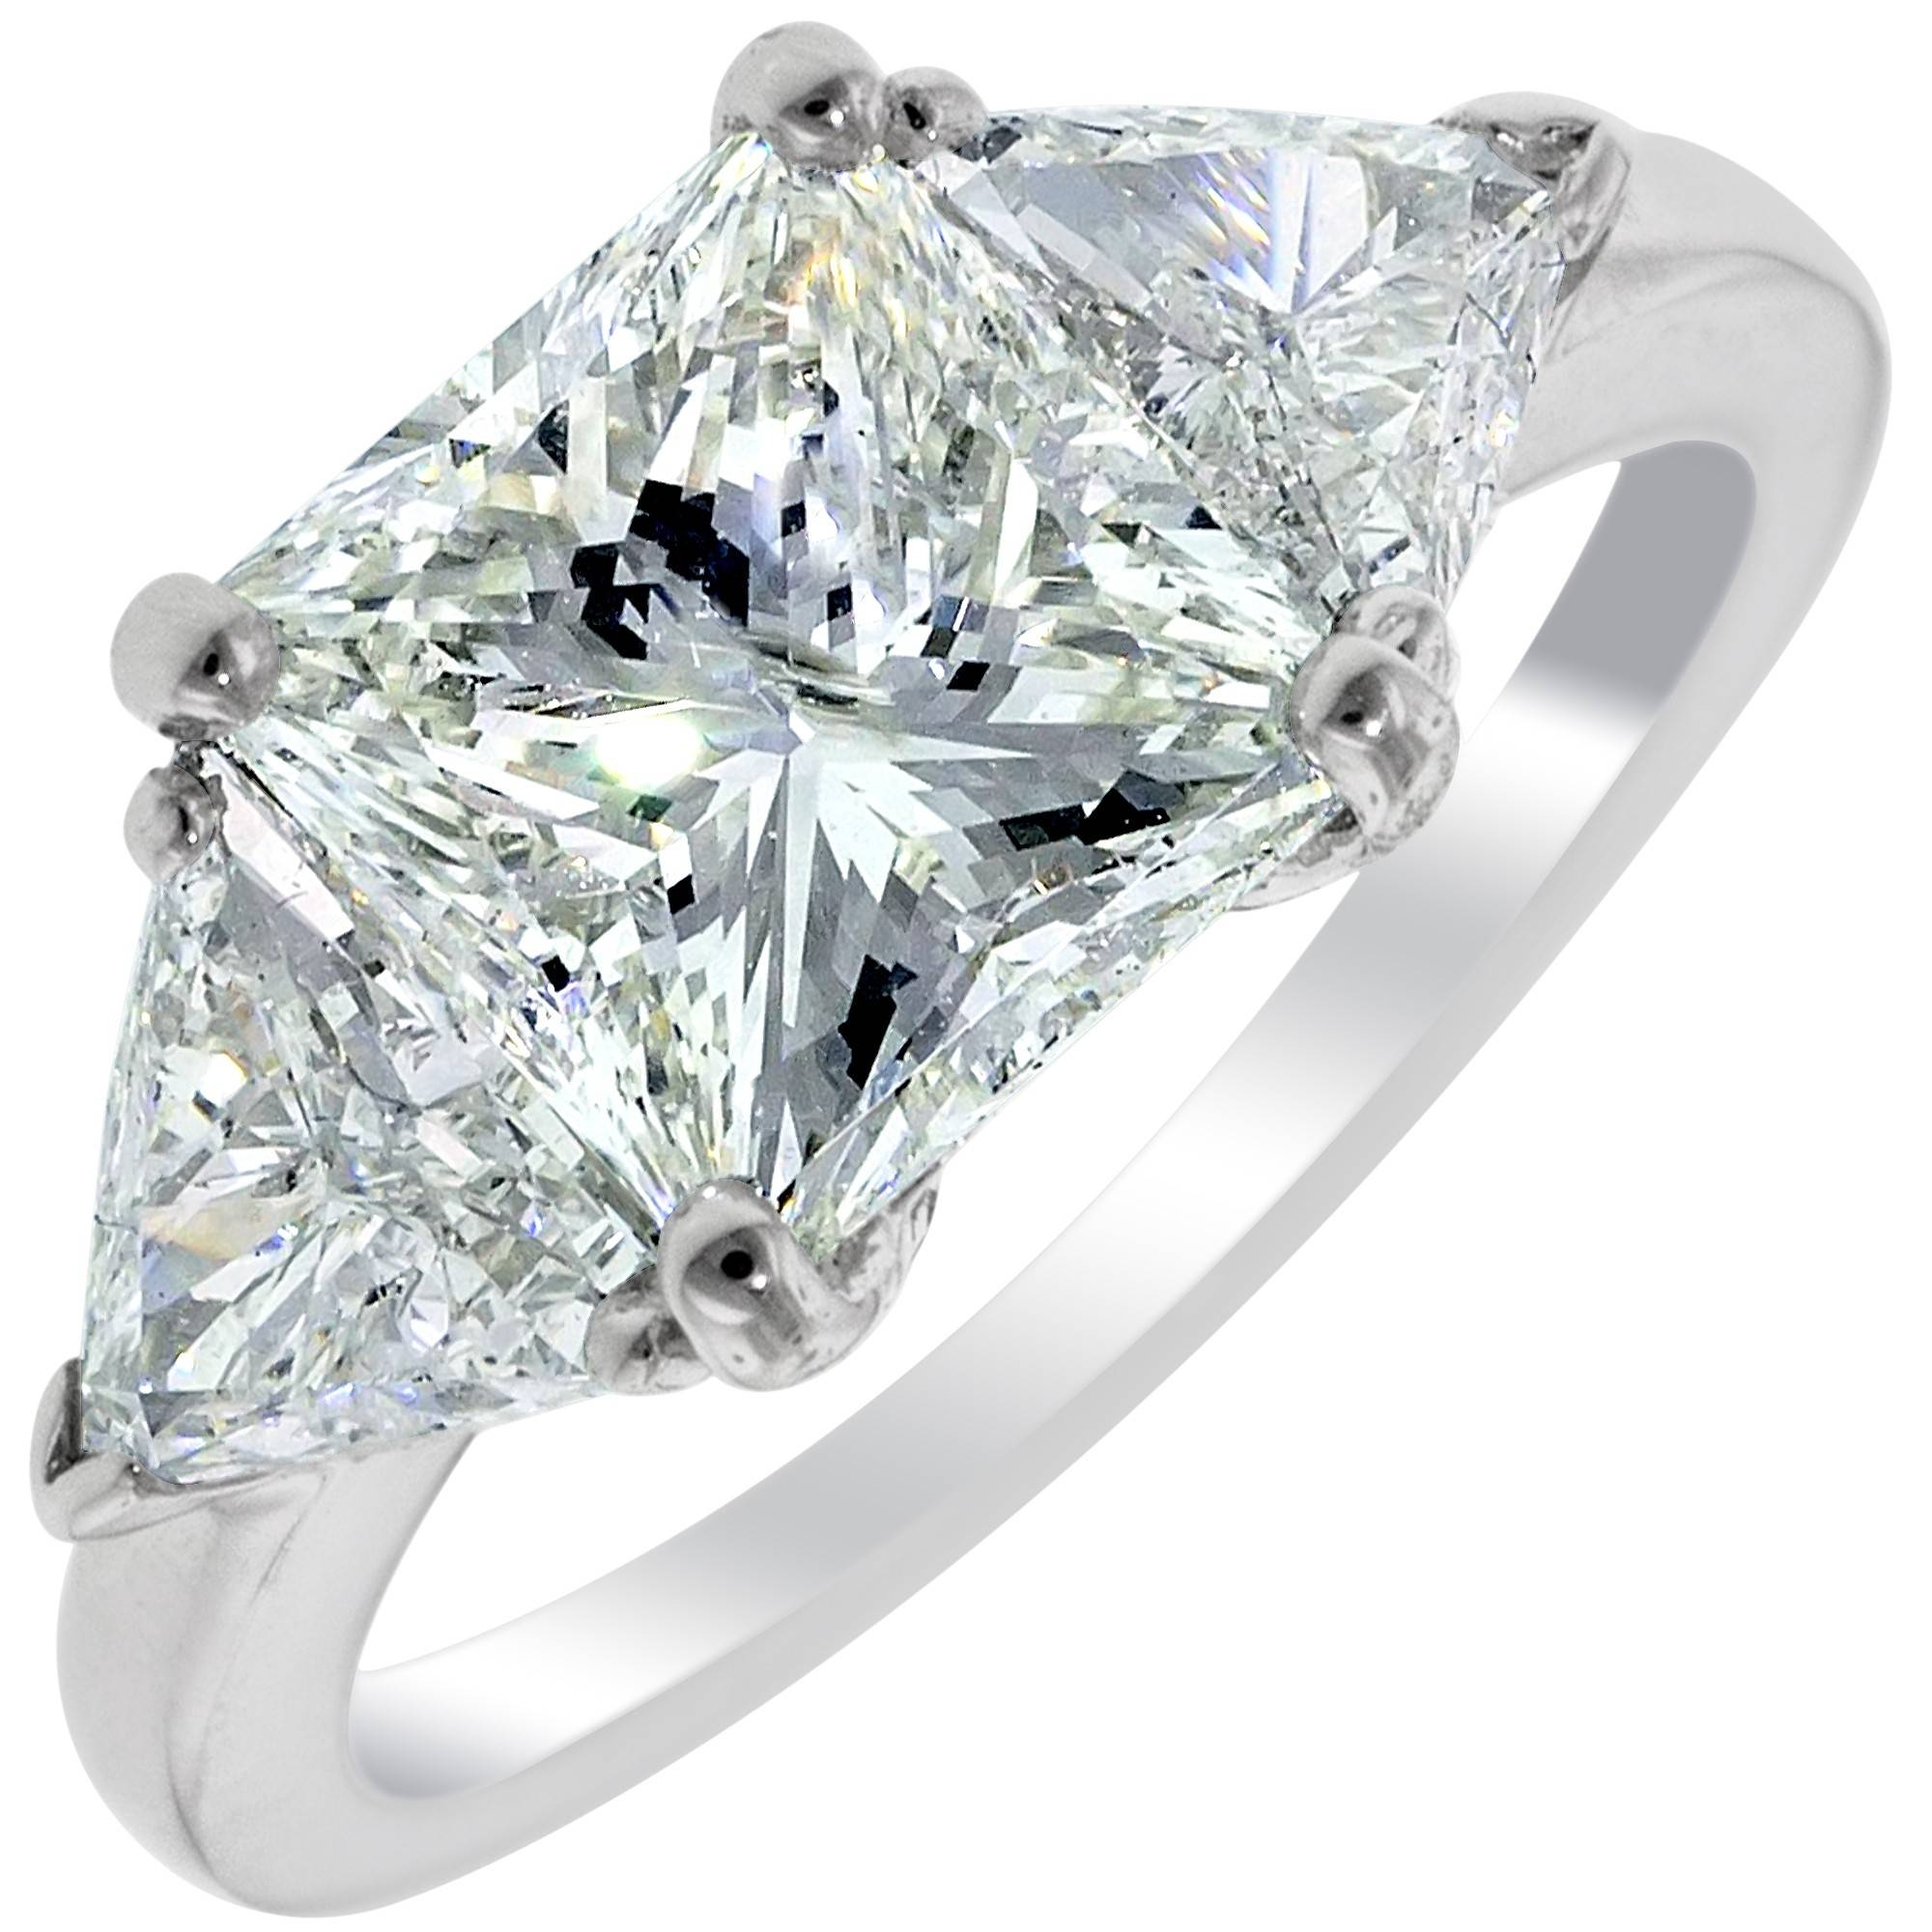 Wedding Rings : Zales Trillion Cut Diamond Meaning Trillion Cut In Triangle Cut Diamond Engagement Rings (View 10 of 15)